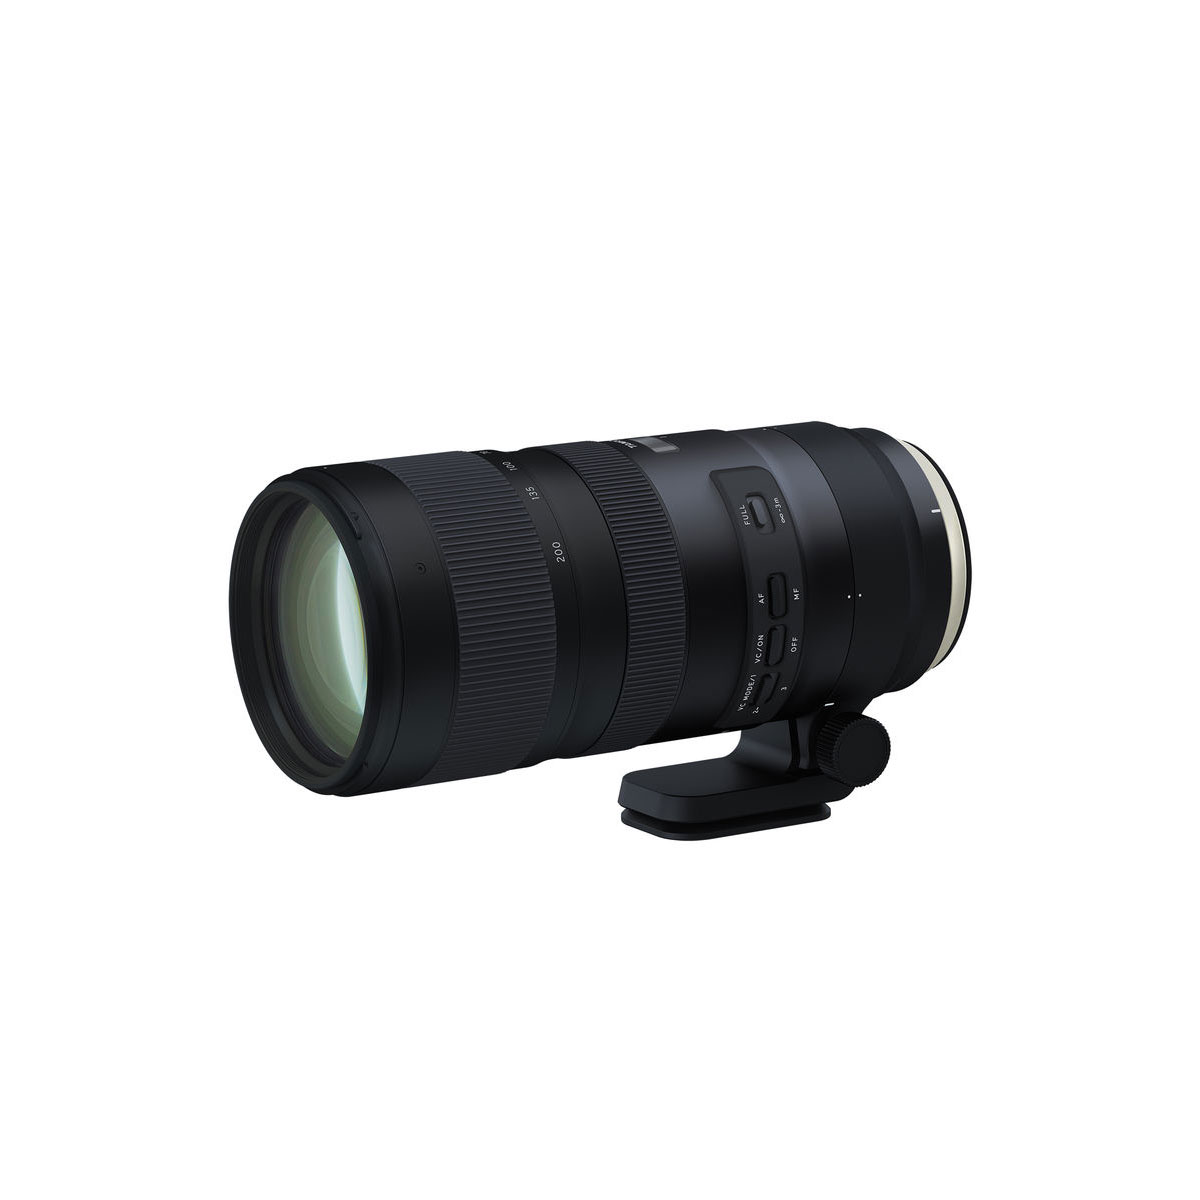 tamron sp 70 200mm f 2 8 di vc usd g2 lens for canon the camera exchange inc. Black Bedroom Furniture Sets. Home Design Ideas